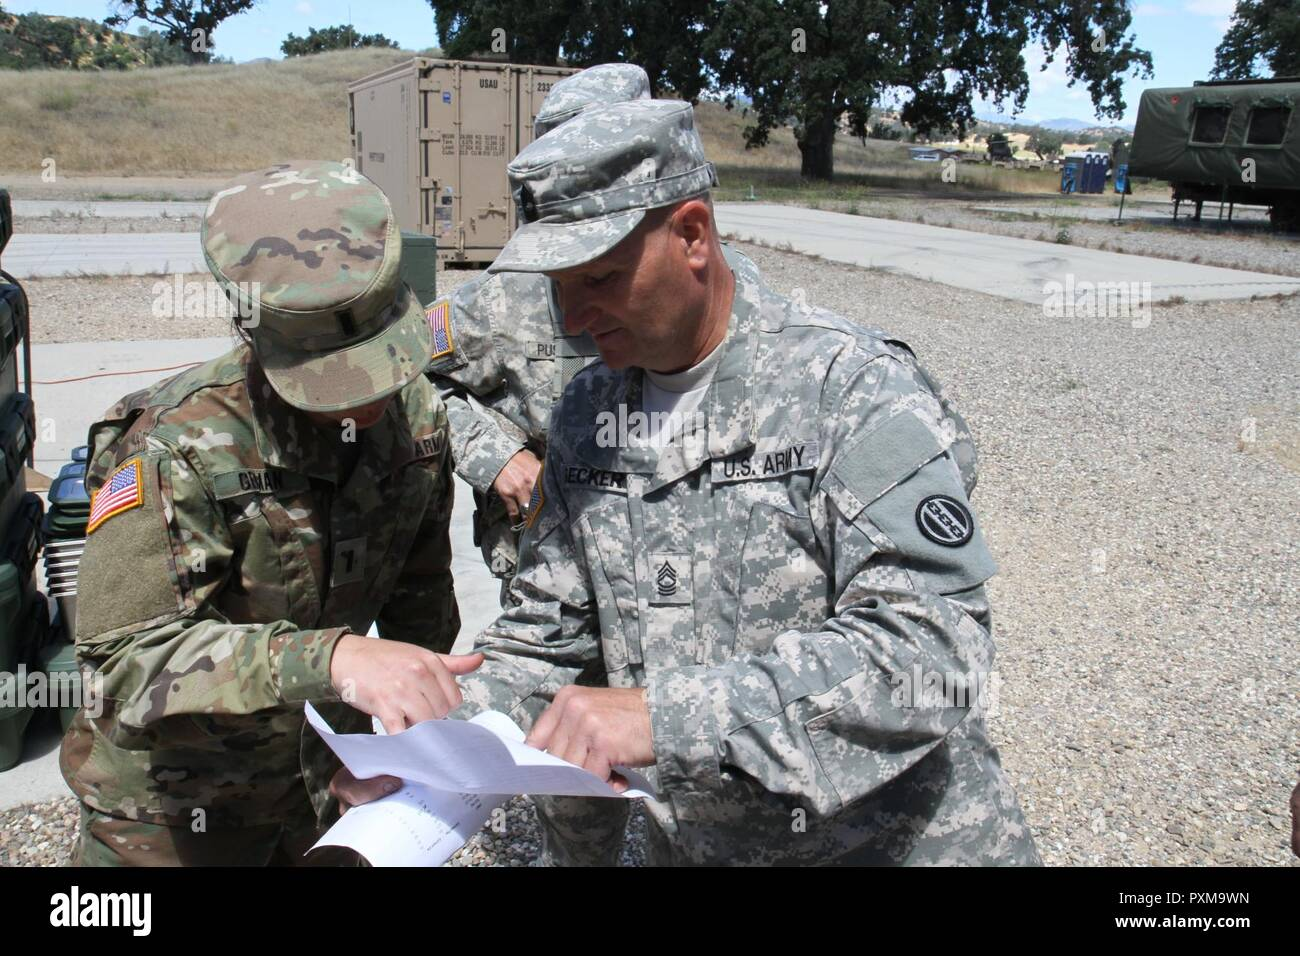 (Left) U.S. Army 1st Lt. Majken Geiman and (Right) Sgt. 1st Class Hugh Becker of the 698th Quartermaster Company discuss troop counts and plans to expedite the chow line at Tactical Assembly Area Ward on June 11, 2017 on Fort Hunter Liggett, Calif. More than 3000 U.S. Army Reserve Soldiers are participating in the 91st Training Division's Warrior Exercise 91-17-03 at Fort Hunter Liggett, California; the Warrior Exercise is a large scale collective training platform to generate capable, lethal and combat ready forces. - Stock Image